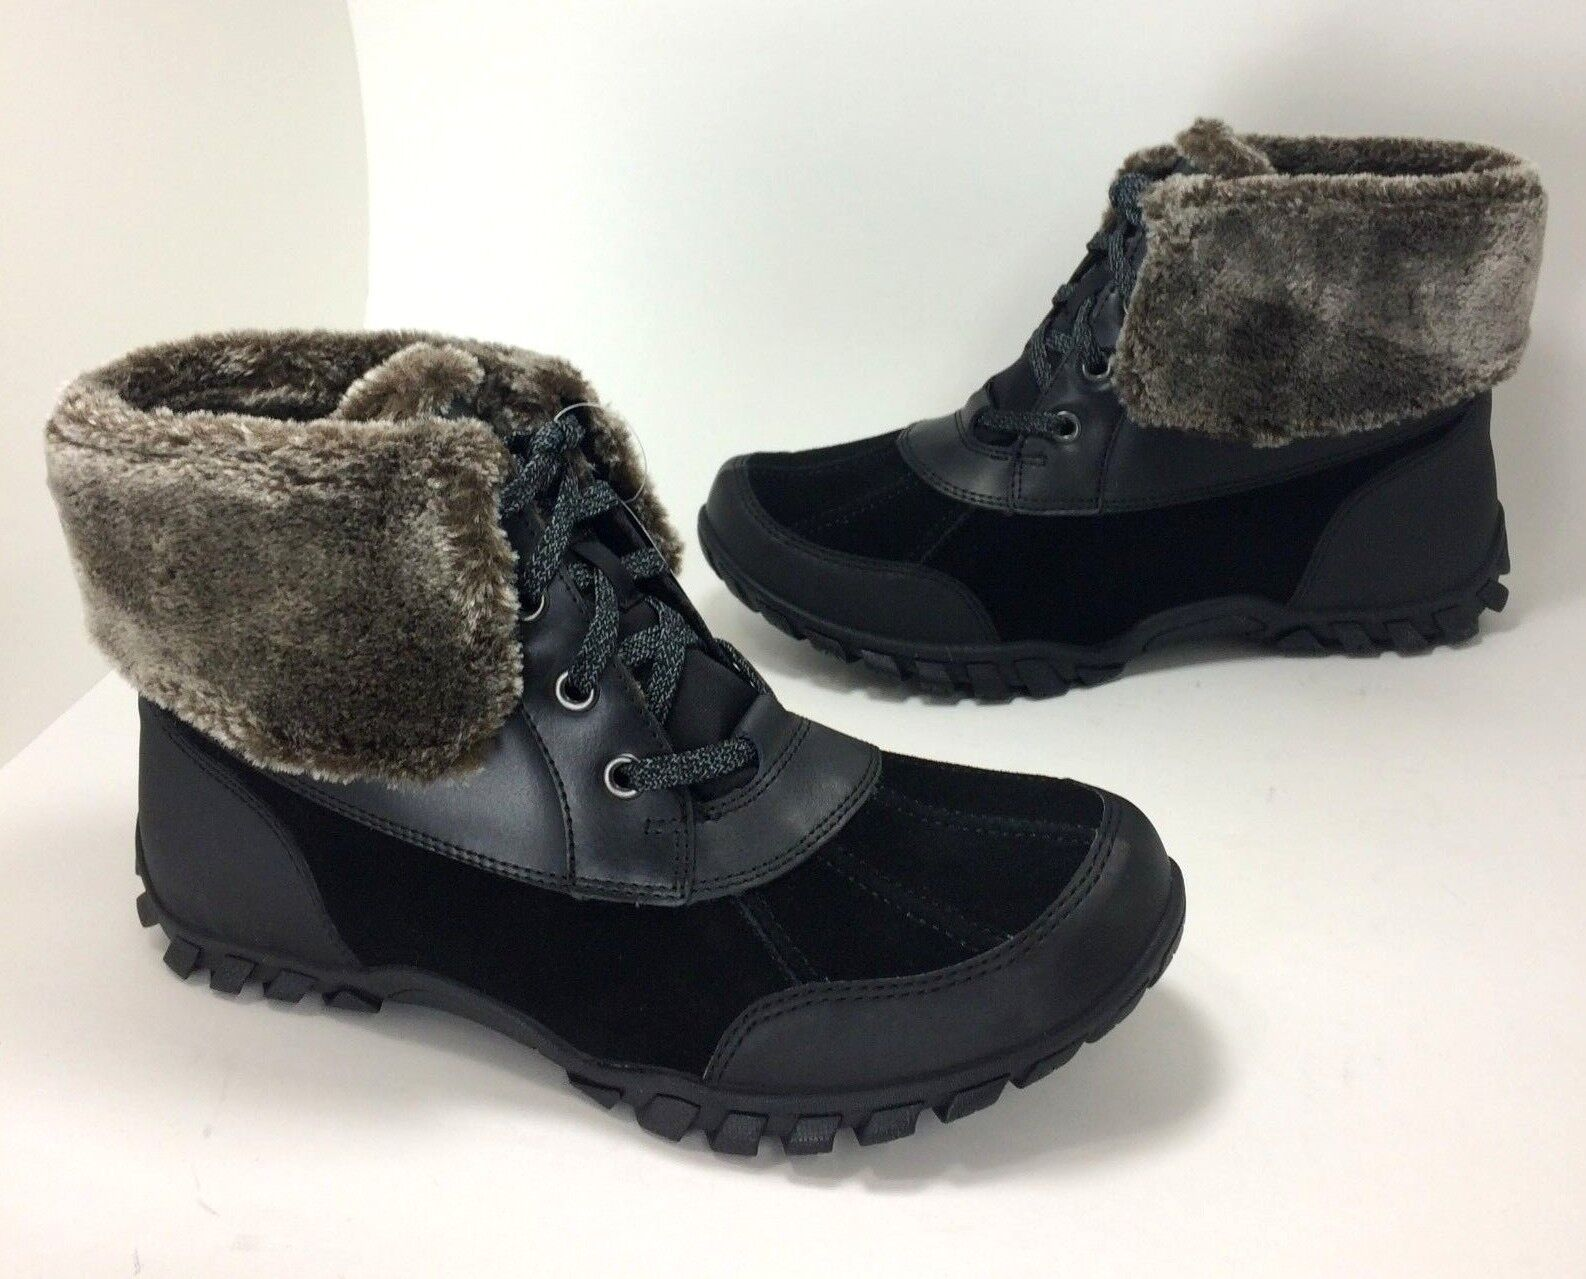 acquista marca New  120 Easy Easy Easy Spirit Nuria Dimensione 10 nero Winter stivali Genuine Suede & Faux Fur  vendita calda online